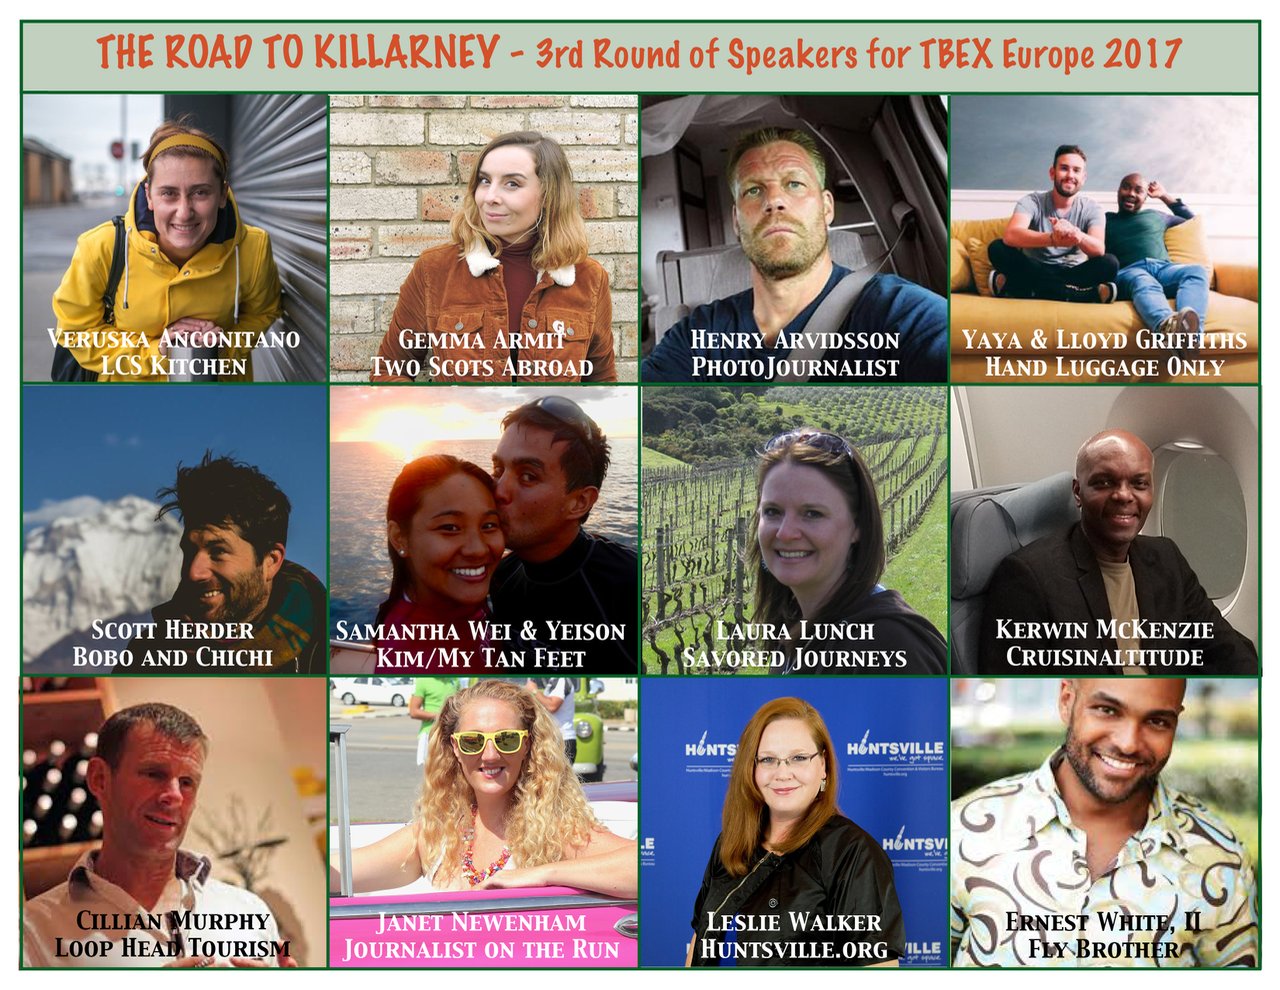 Third Round of Speakers for TBEX Europe 2017